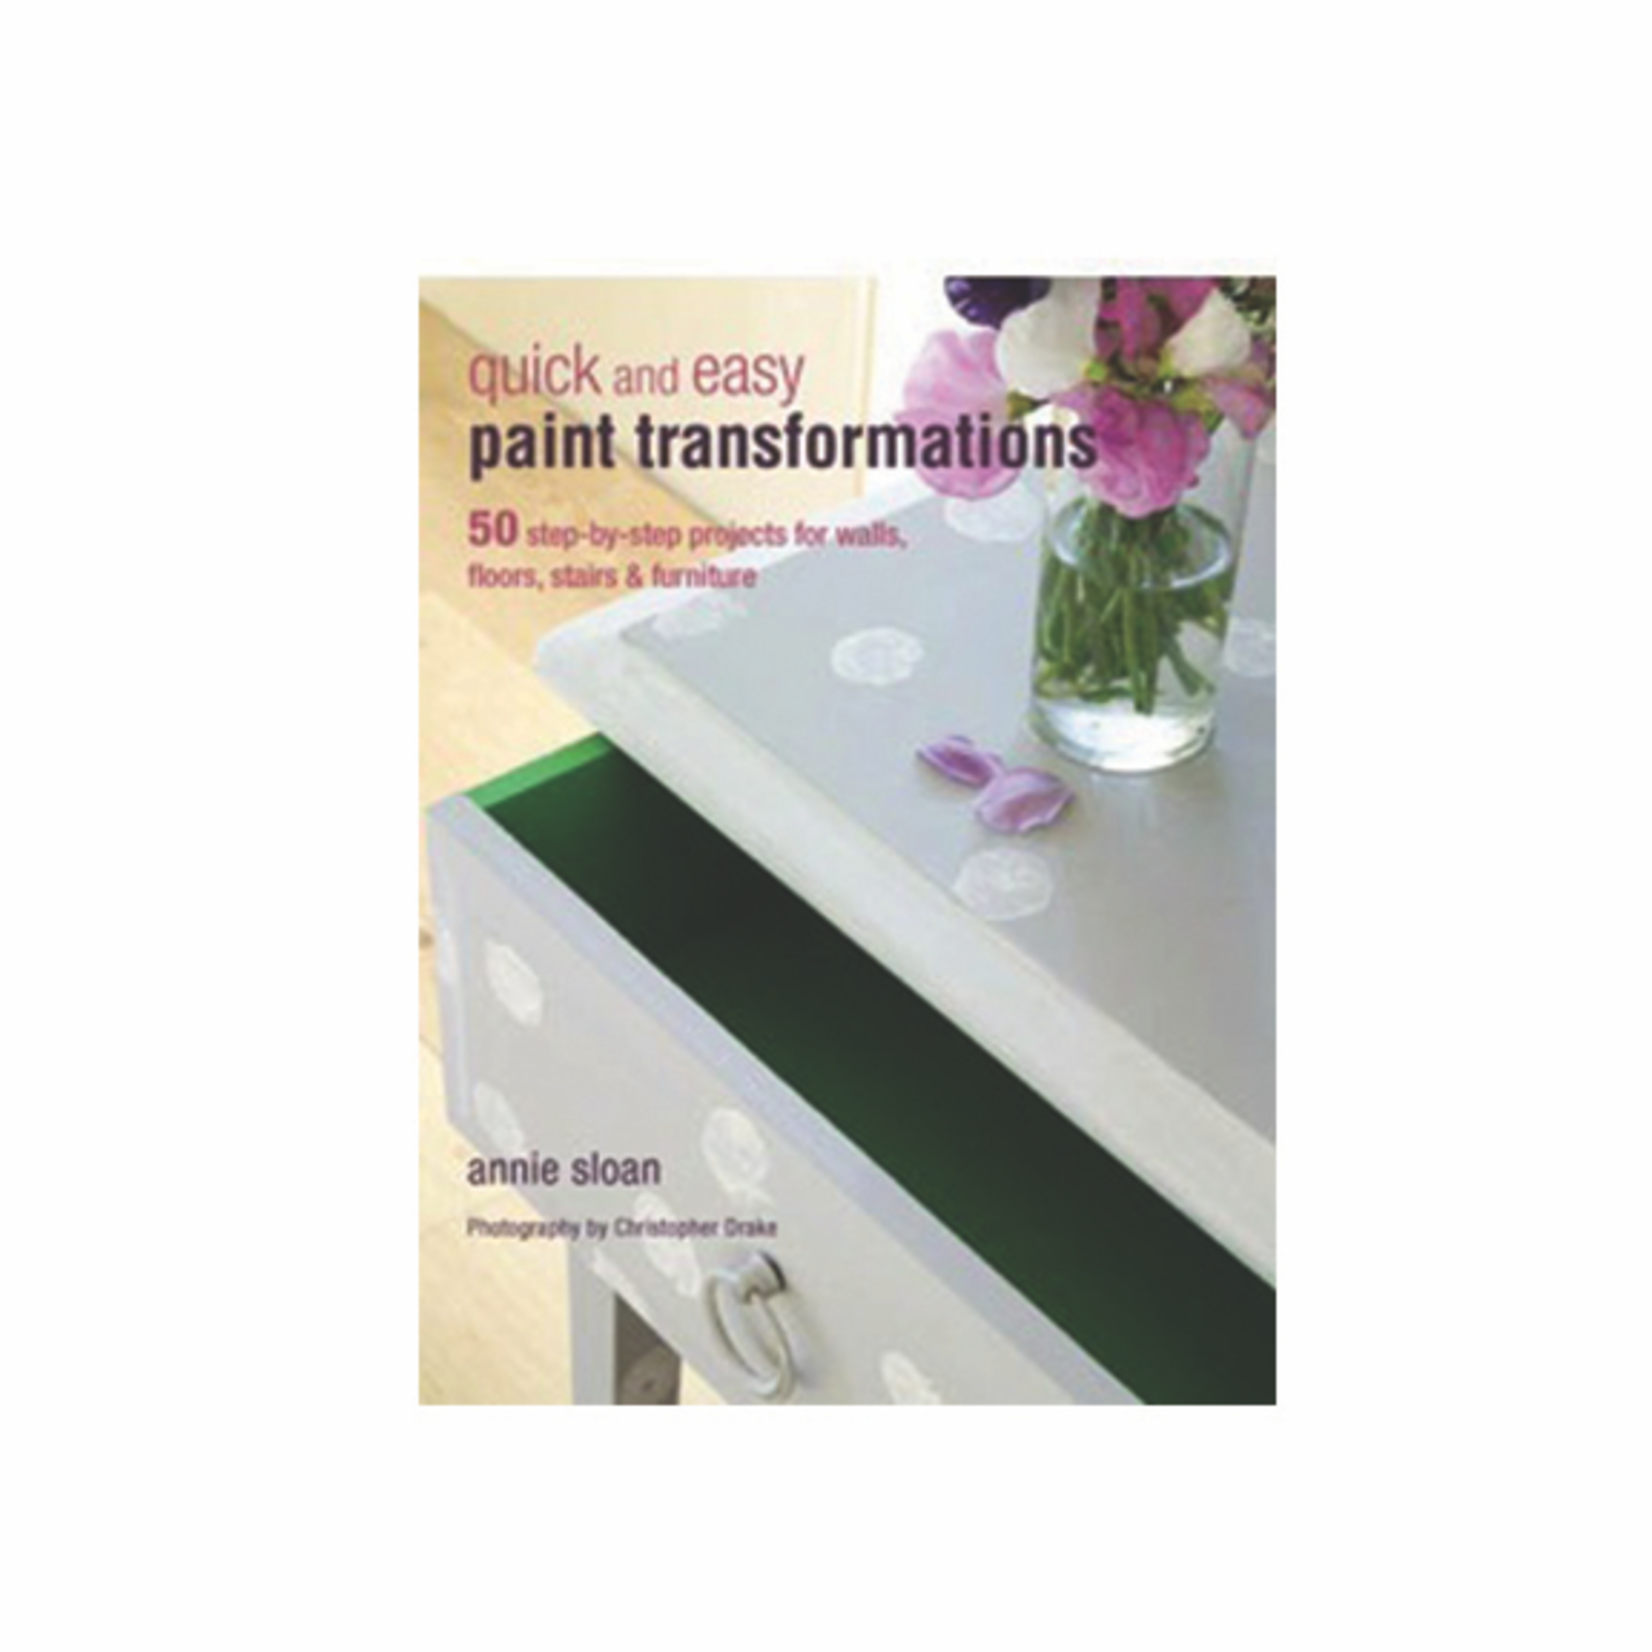 Annie Sloan Annie Sloan Quick and Easy Paint Transformations Book